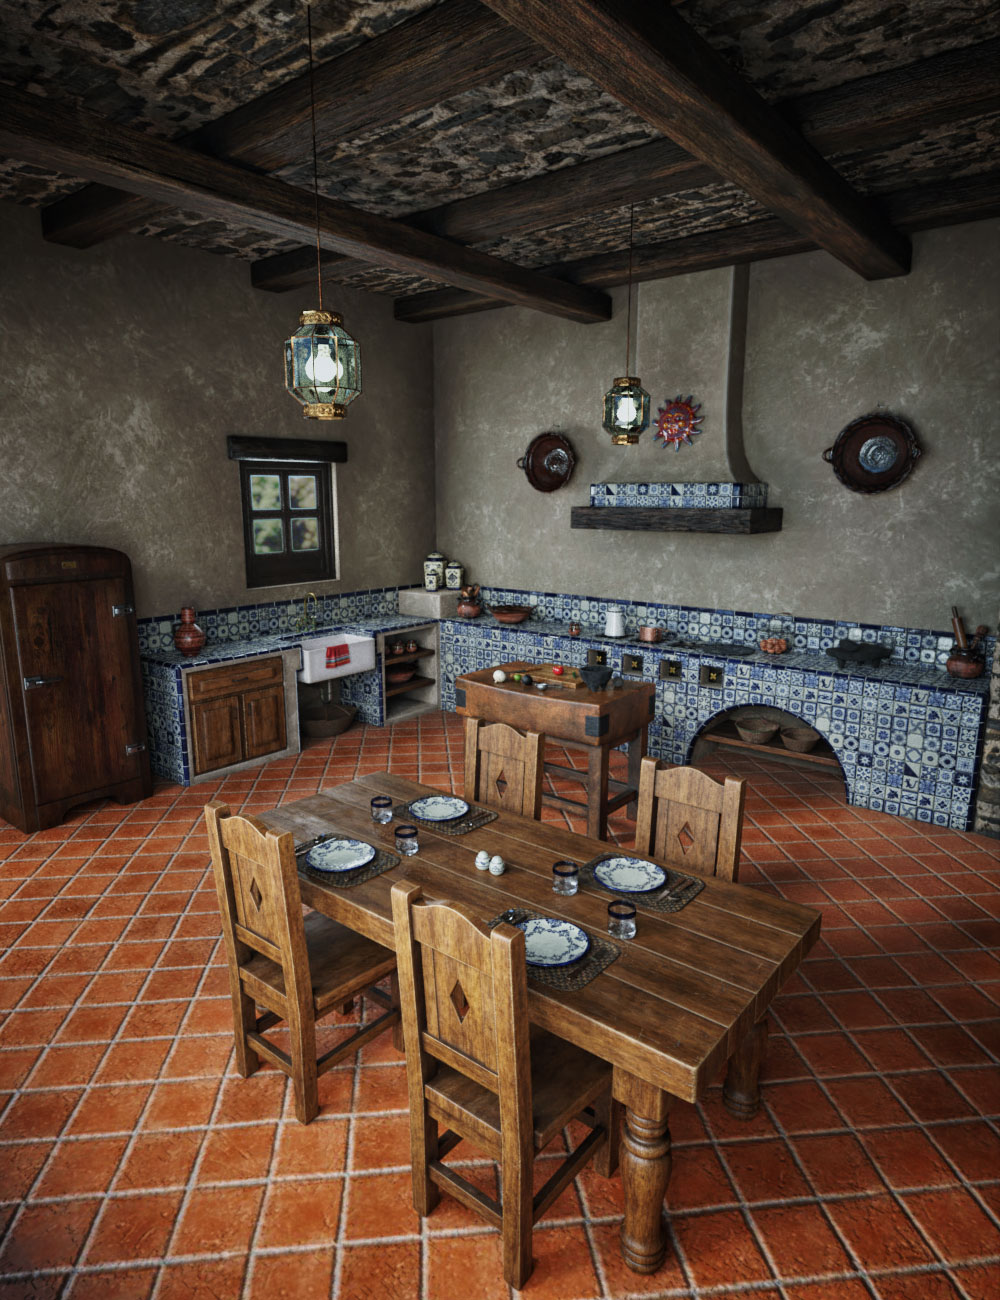 Hacienda Kitchen by: Hypertaf, 3D Models by Daz 3D